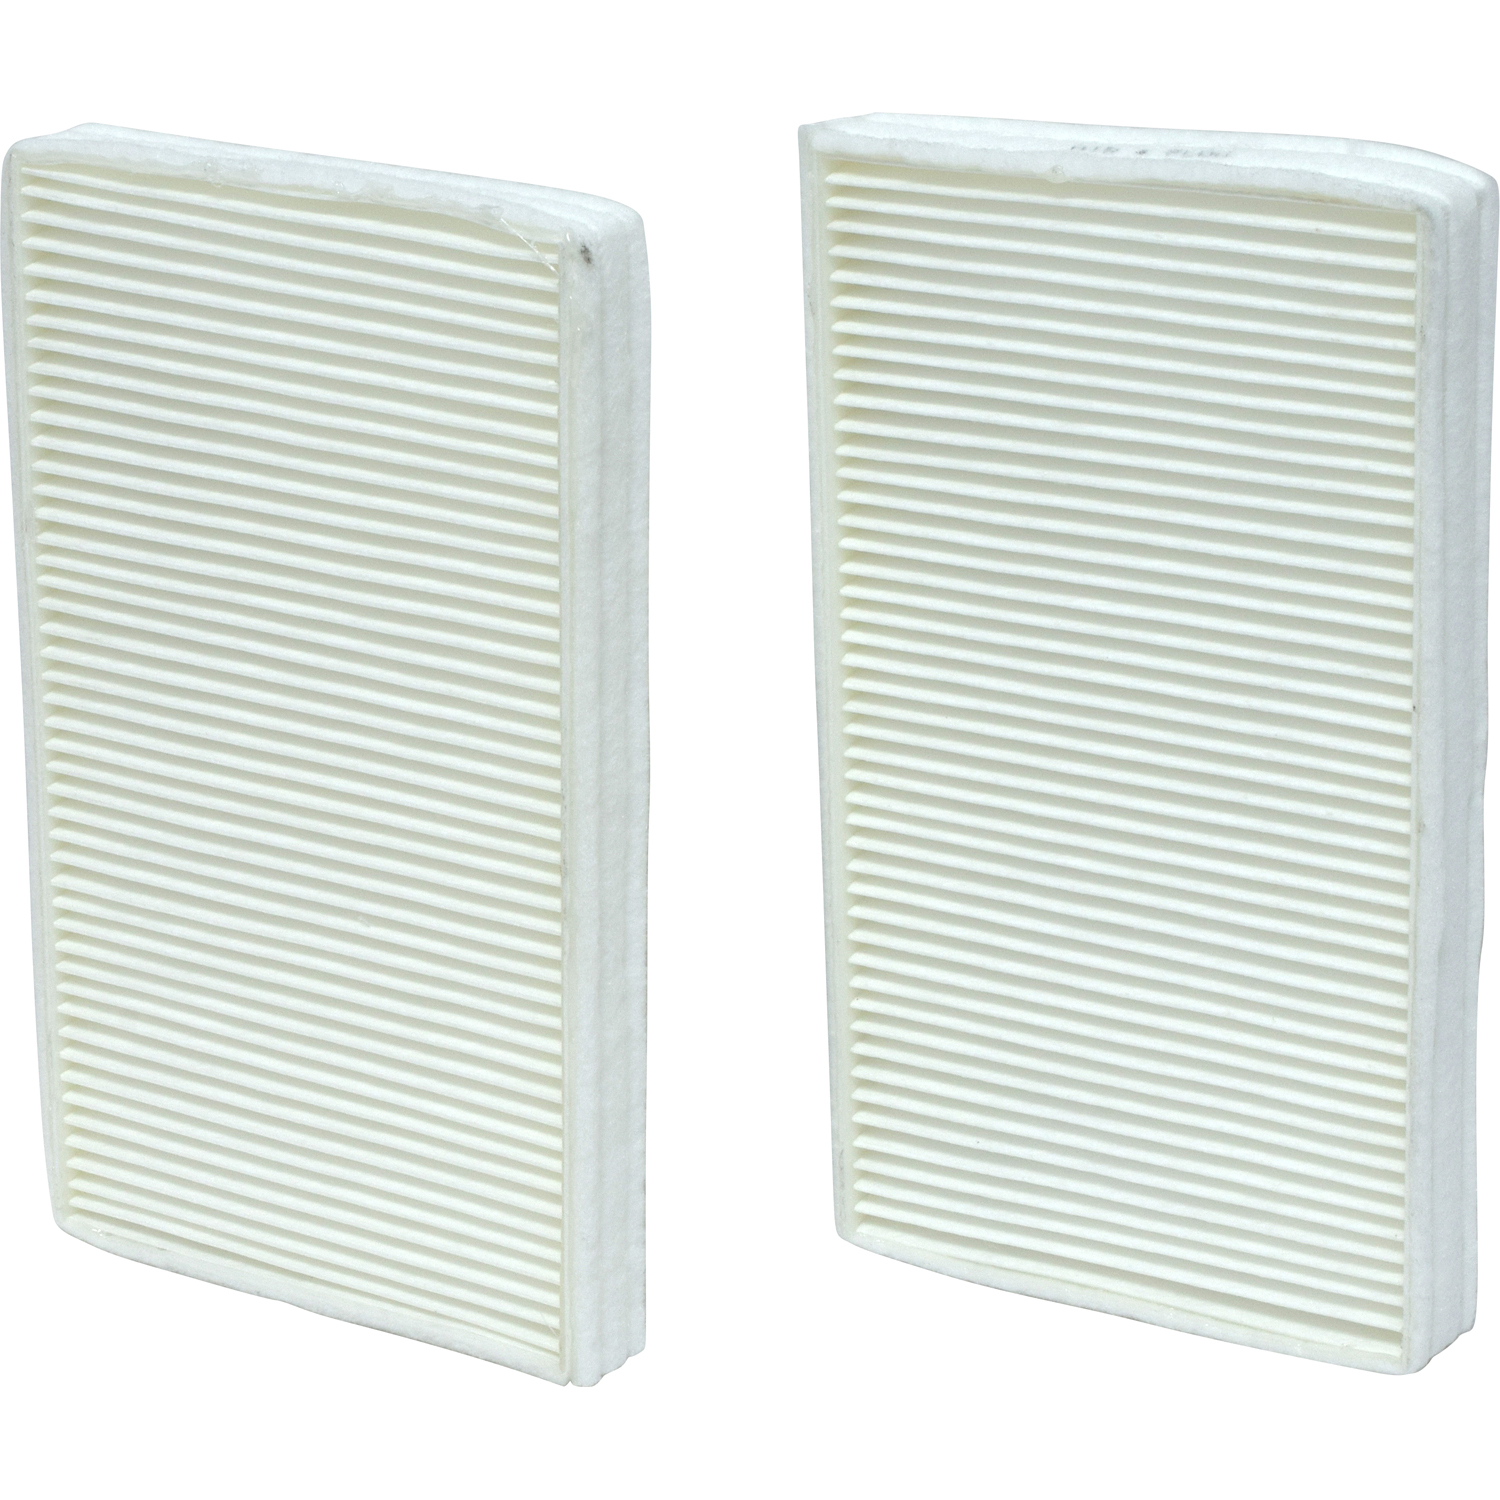 Particulate Cabin Air Filter CHEV TAHOE 00-99